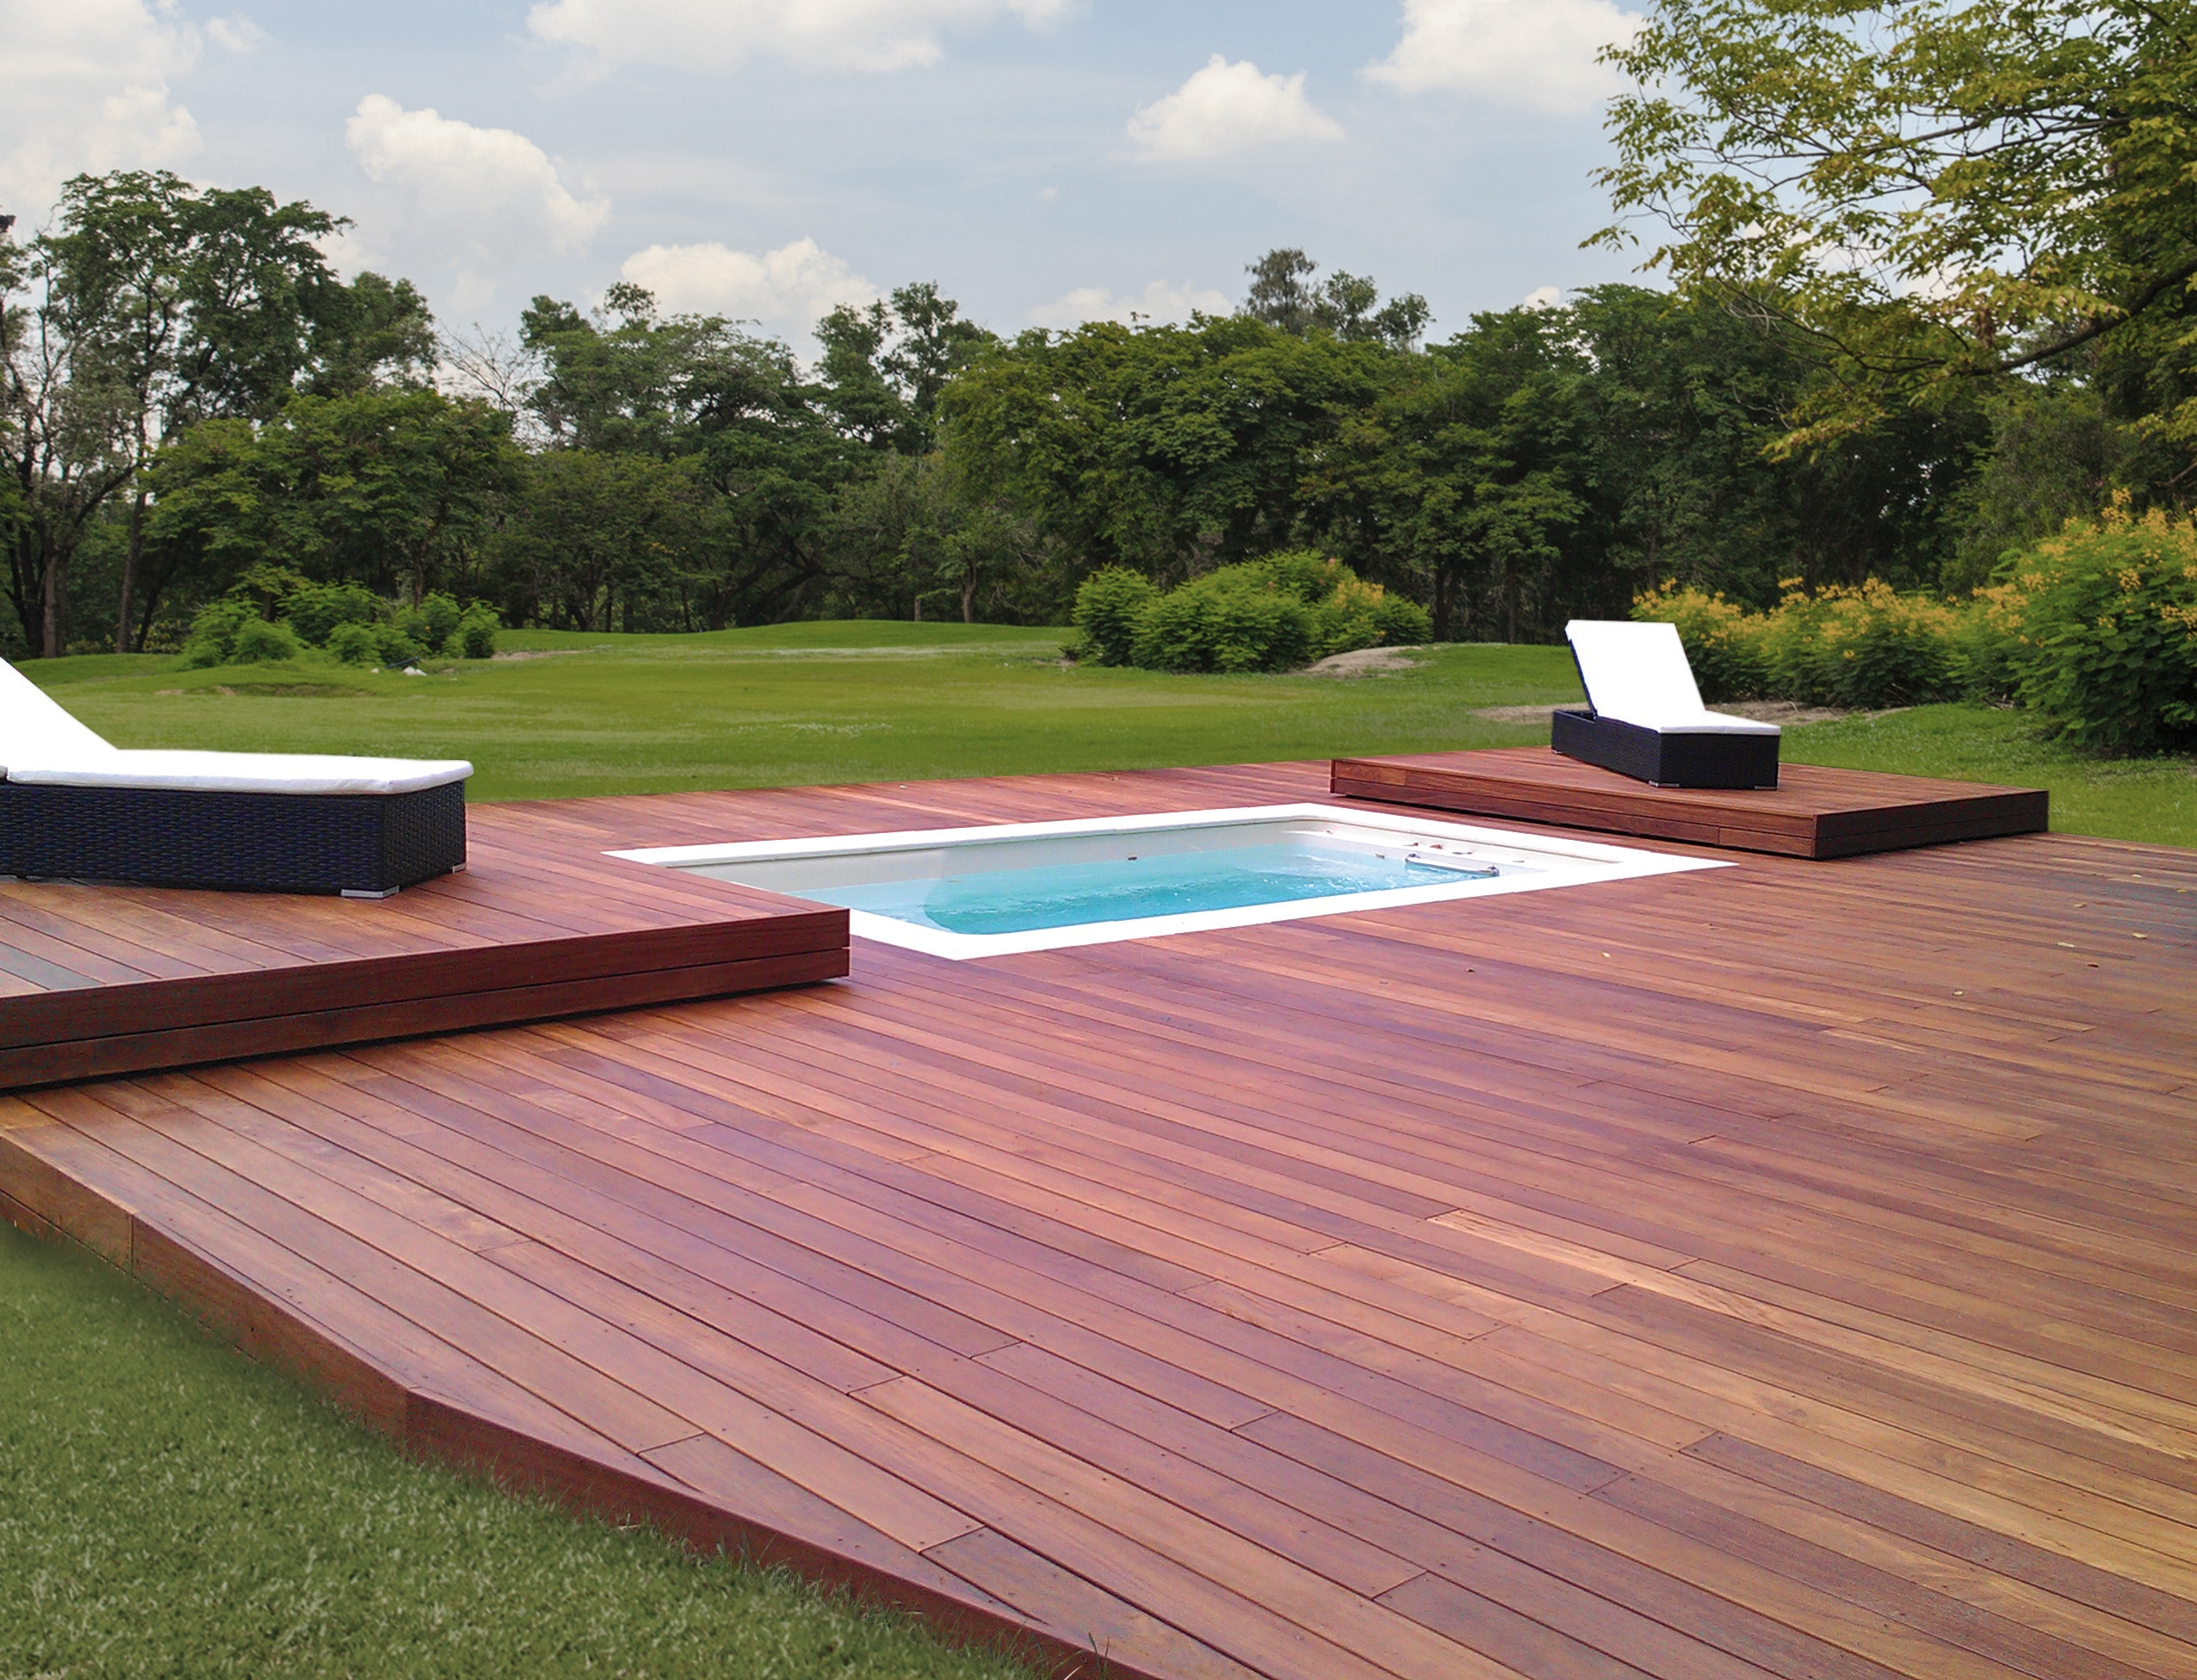 Pretty Pool - plancher coulissant ouvert